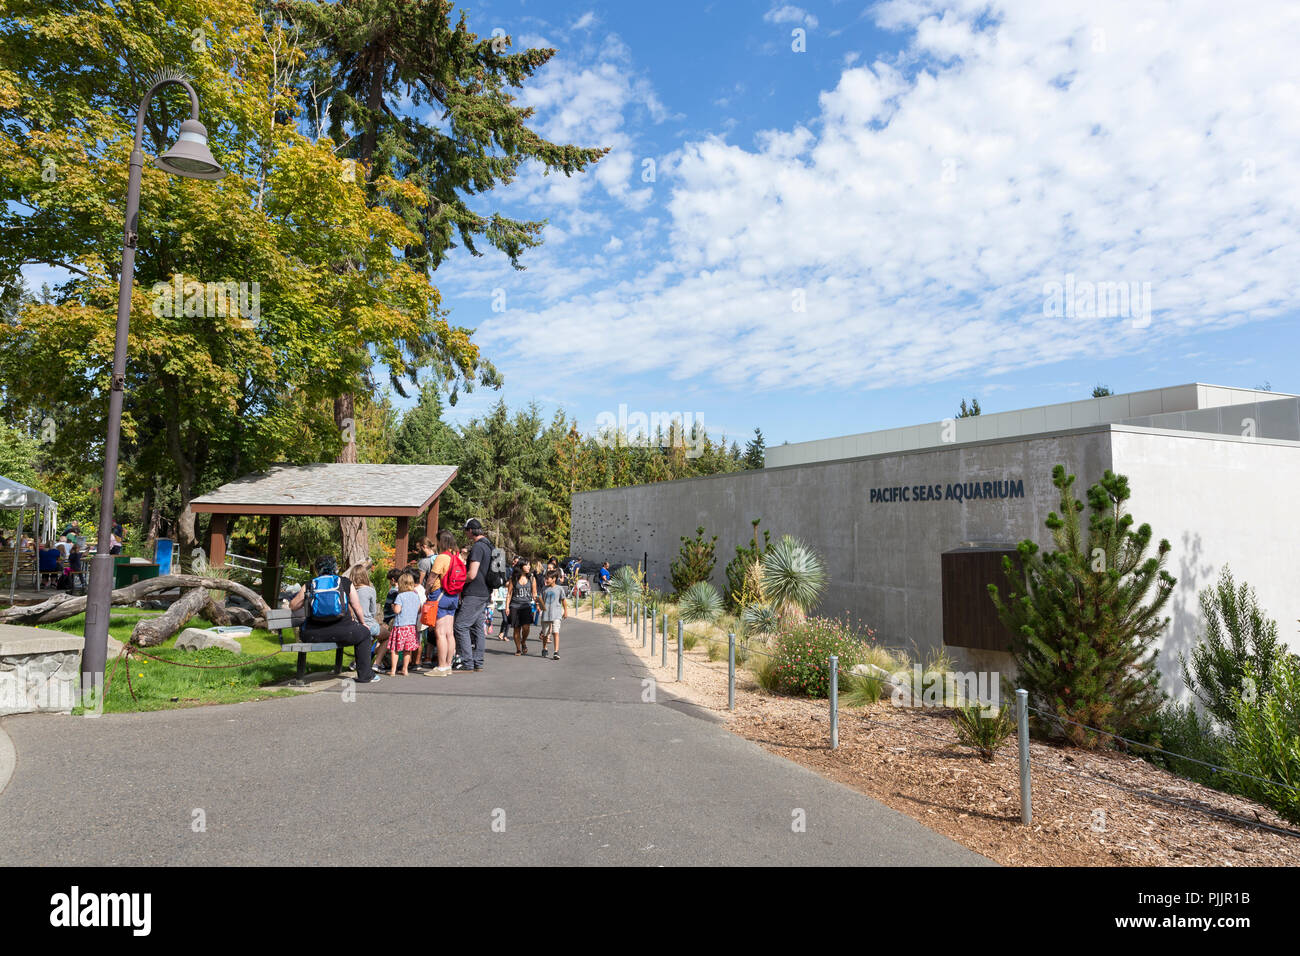 Washington, USA. 7th September 2018.  Visitors gather at the grand opening of the Pacific Seas Aquarium at the Point Defiance Zoo & Aquarium. The aquarium opened to the public on September 7, replacing the former North Pacific Seas Aquarium as part of a $65 million investment in the park. Credit: Paul Christian Gordon/Alamy Live News - Stock Image